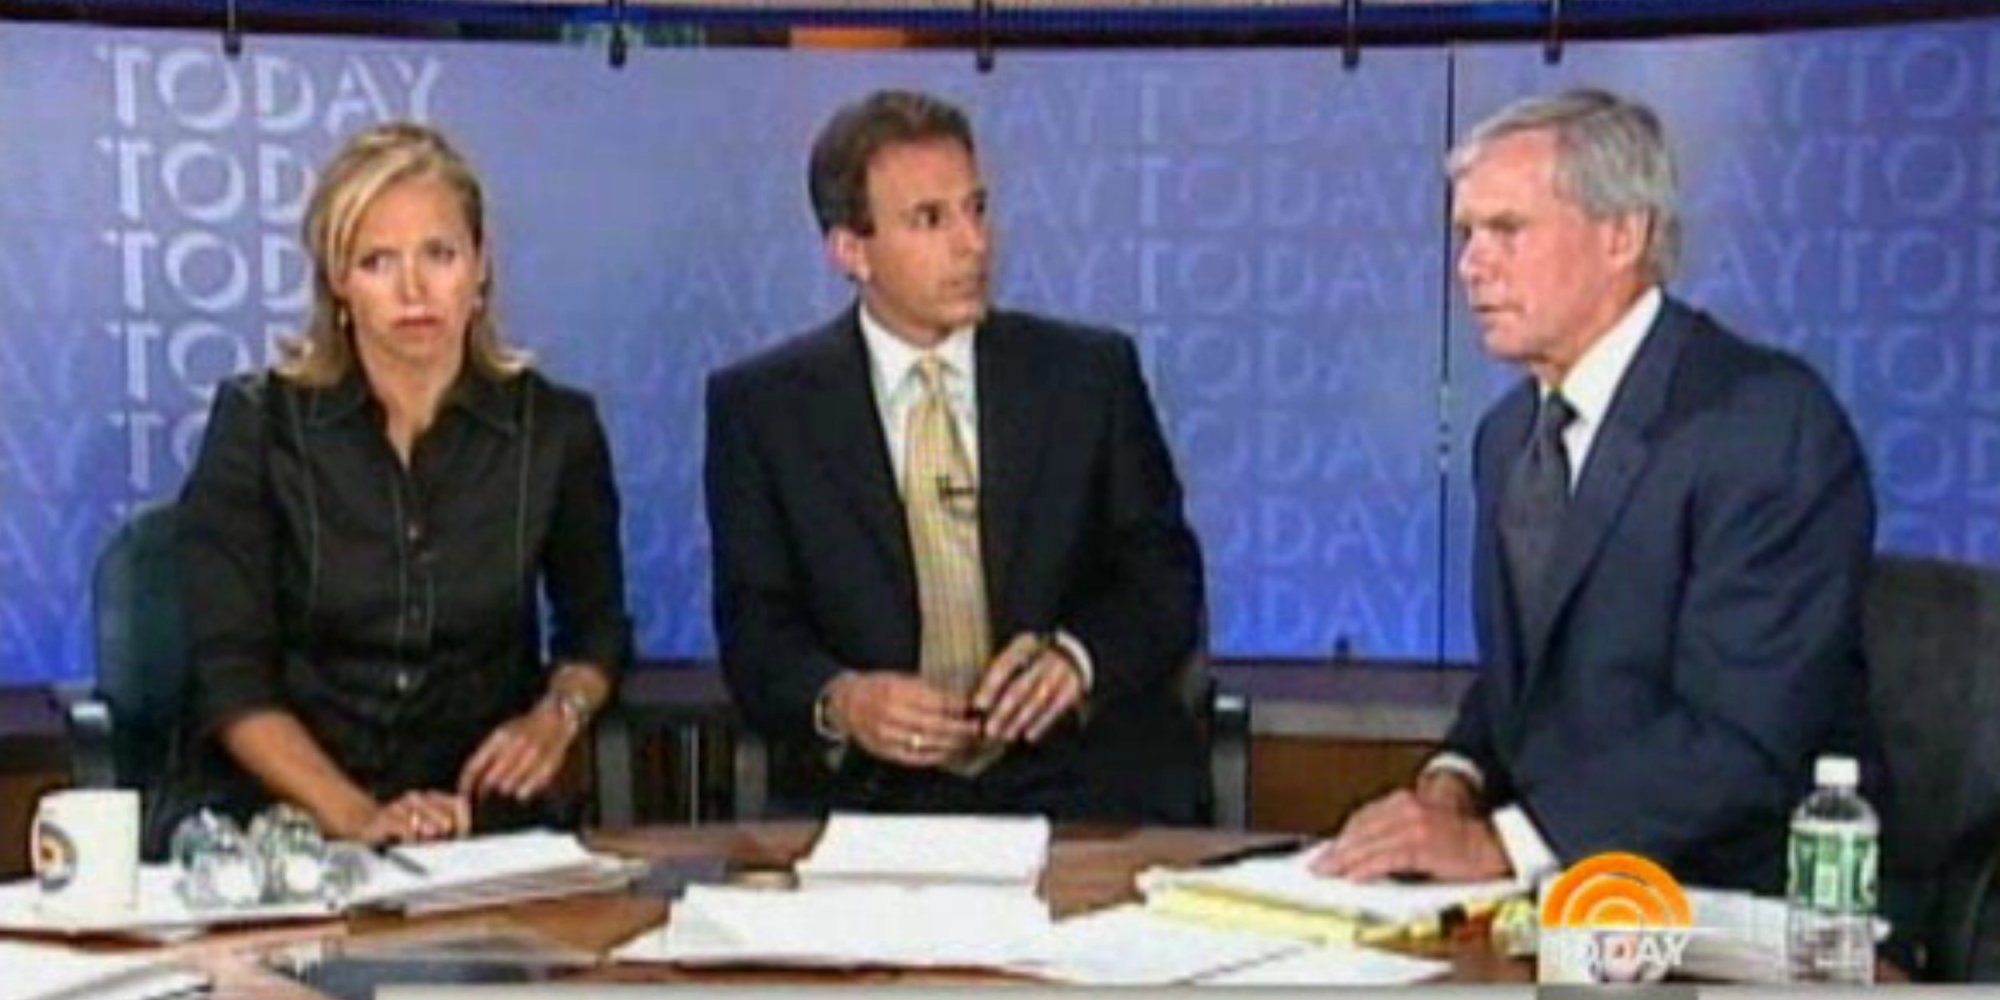 39 today 39 co hosts recall difficulty of reporting on morning - Matt today show ...